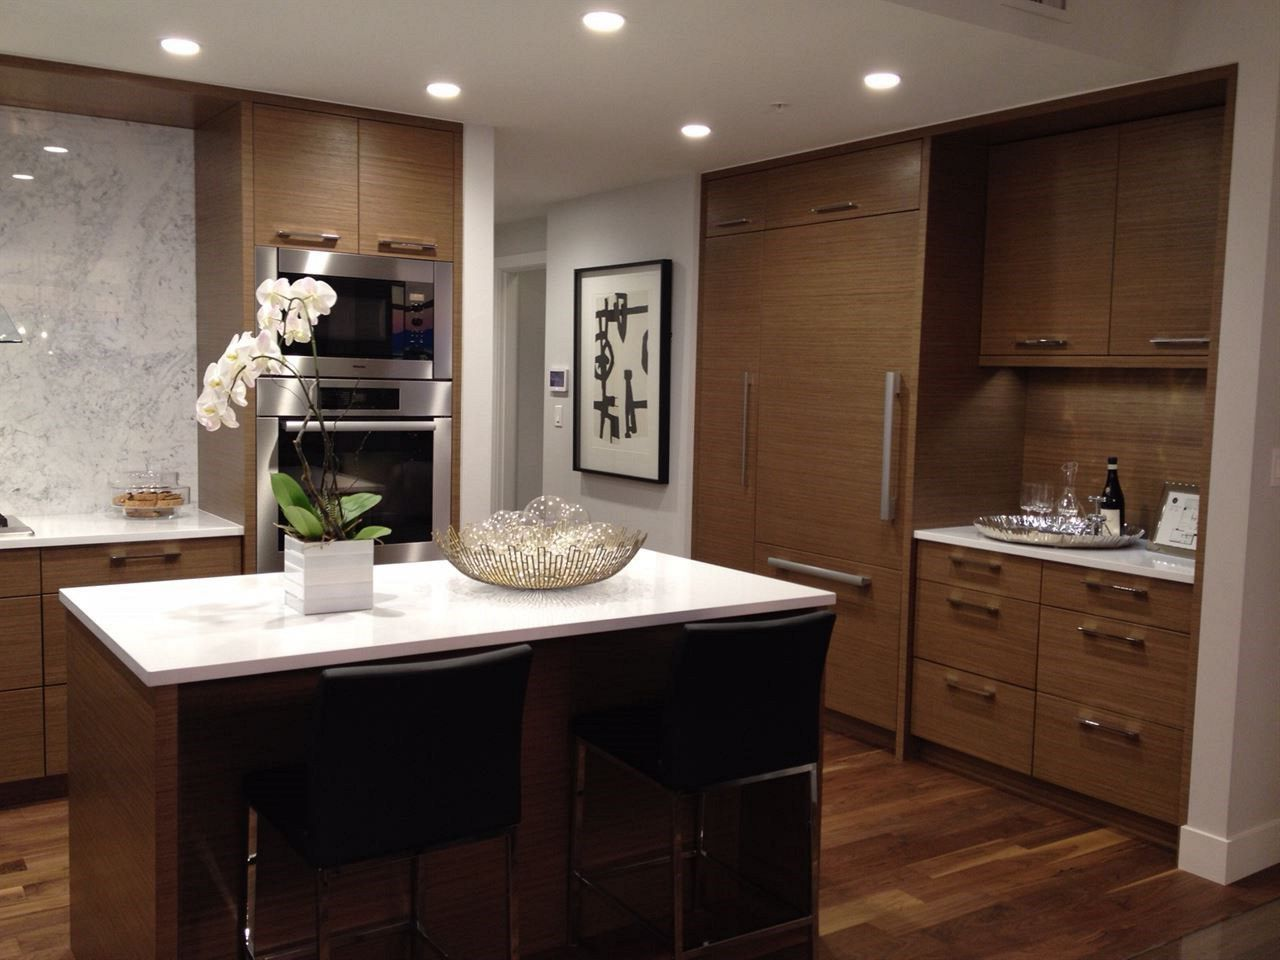 """Main Photo: 1306 4360 BERESFORD Street in Burnaby: Metrotown Condo for sale in """"MODELLO"""" (Burnaby South)  : MLS®# R2144912"""